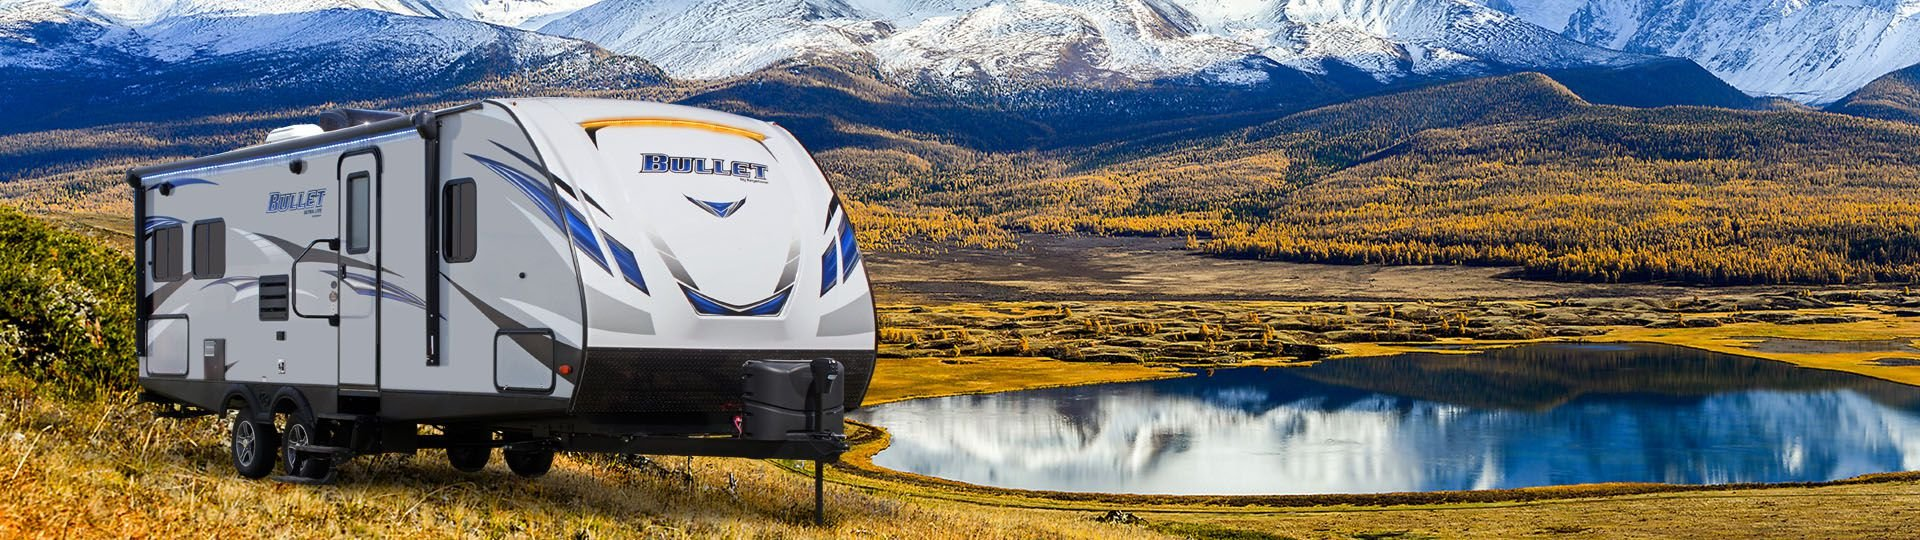 Bullet Travel Trailer - Slide Image